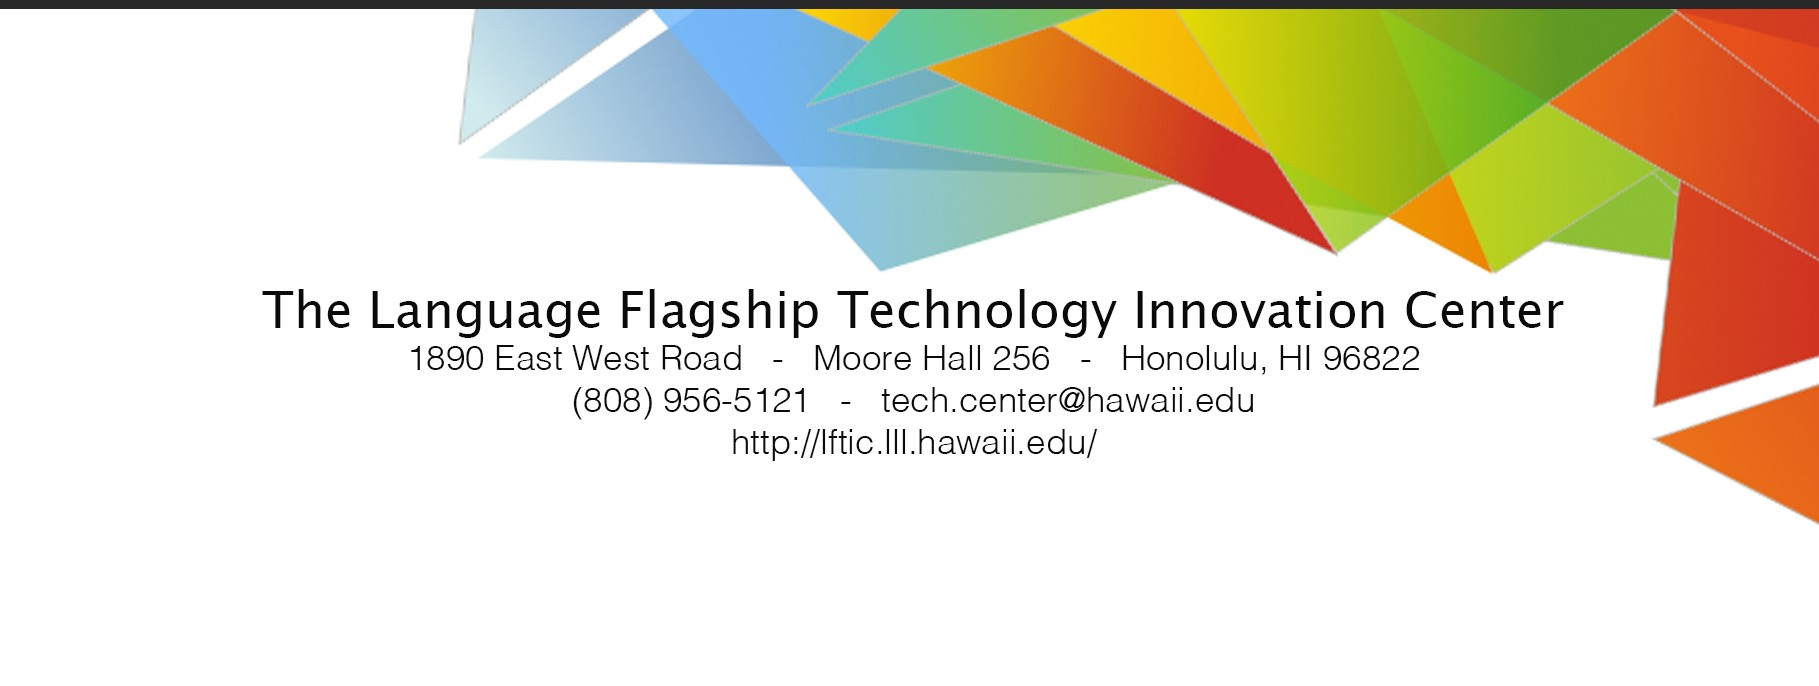 1Pm Pst To Cst the language flagship technology innovation center | linkedin